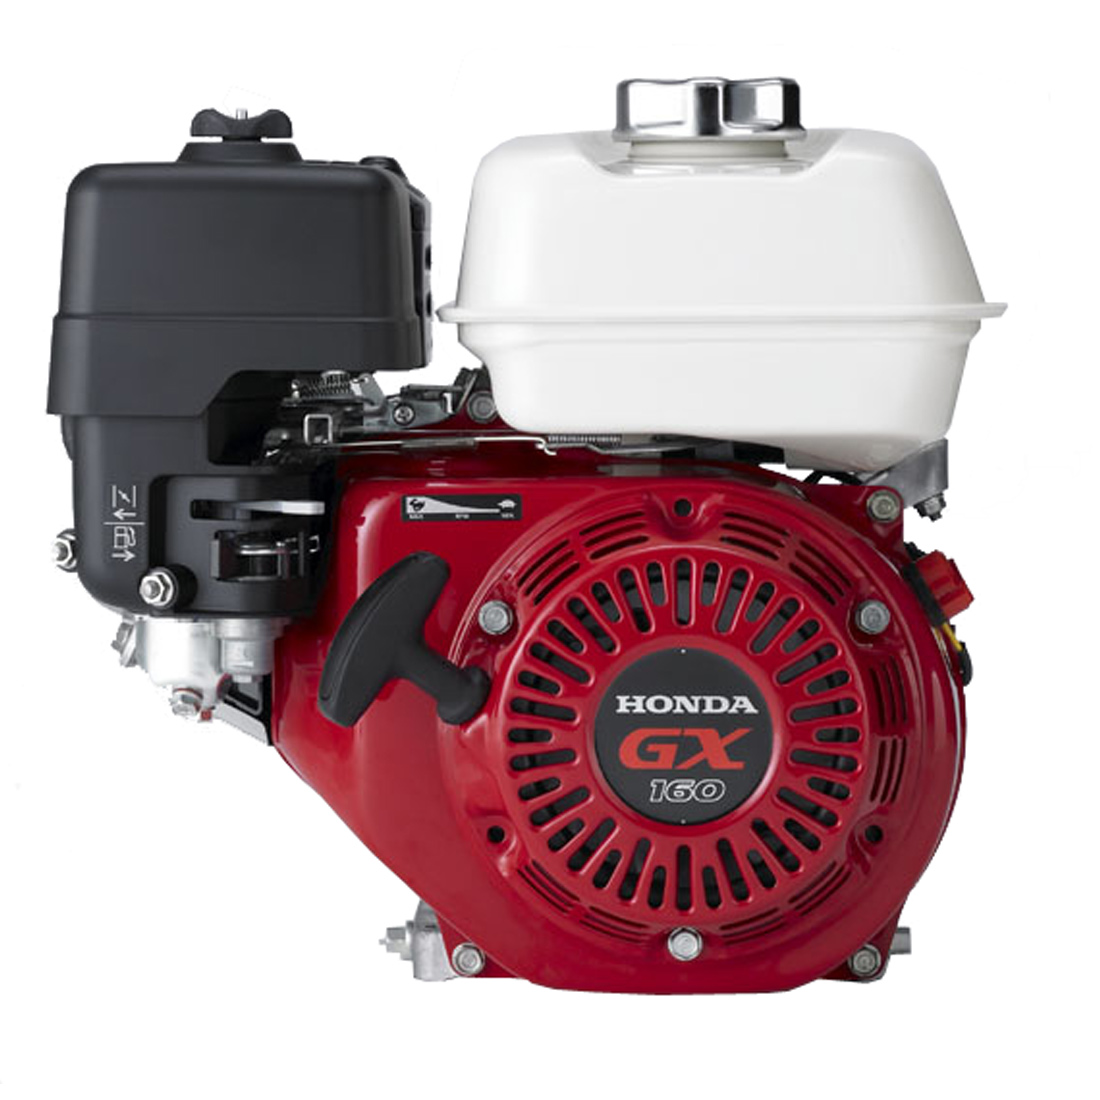 Honda Engines | Small Engine Models, Manuals, Parts, & Resources